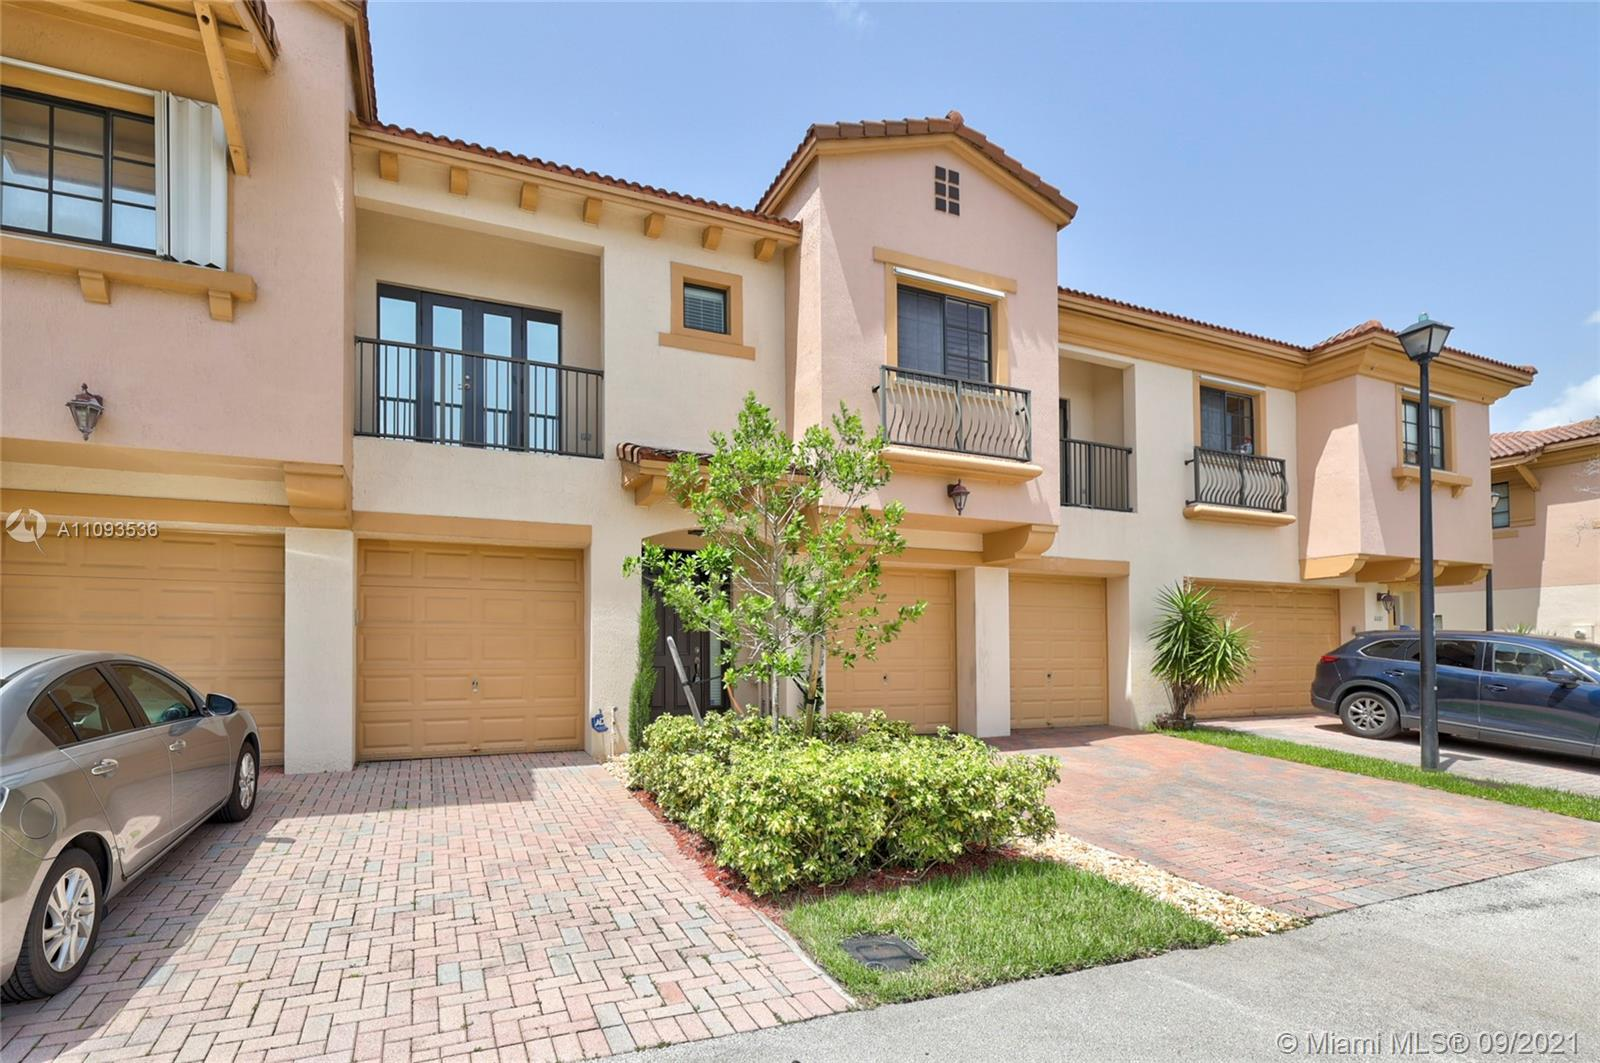 Listing A11093536 - Large Photo # 1